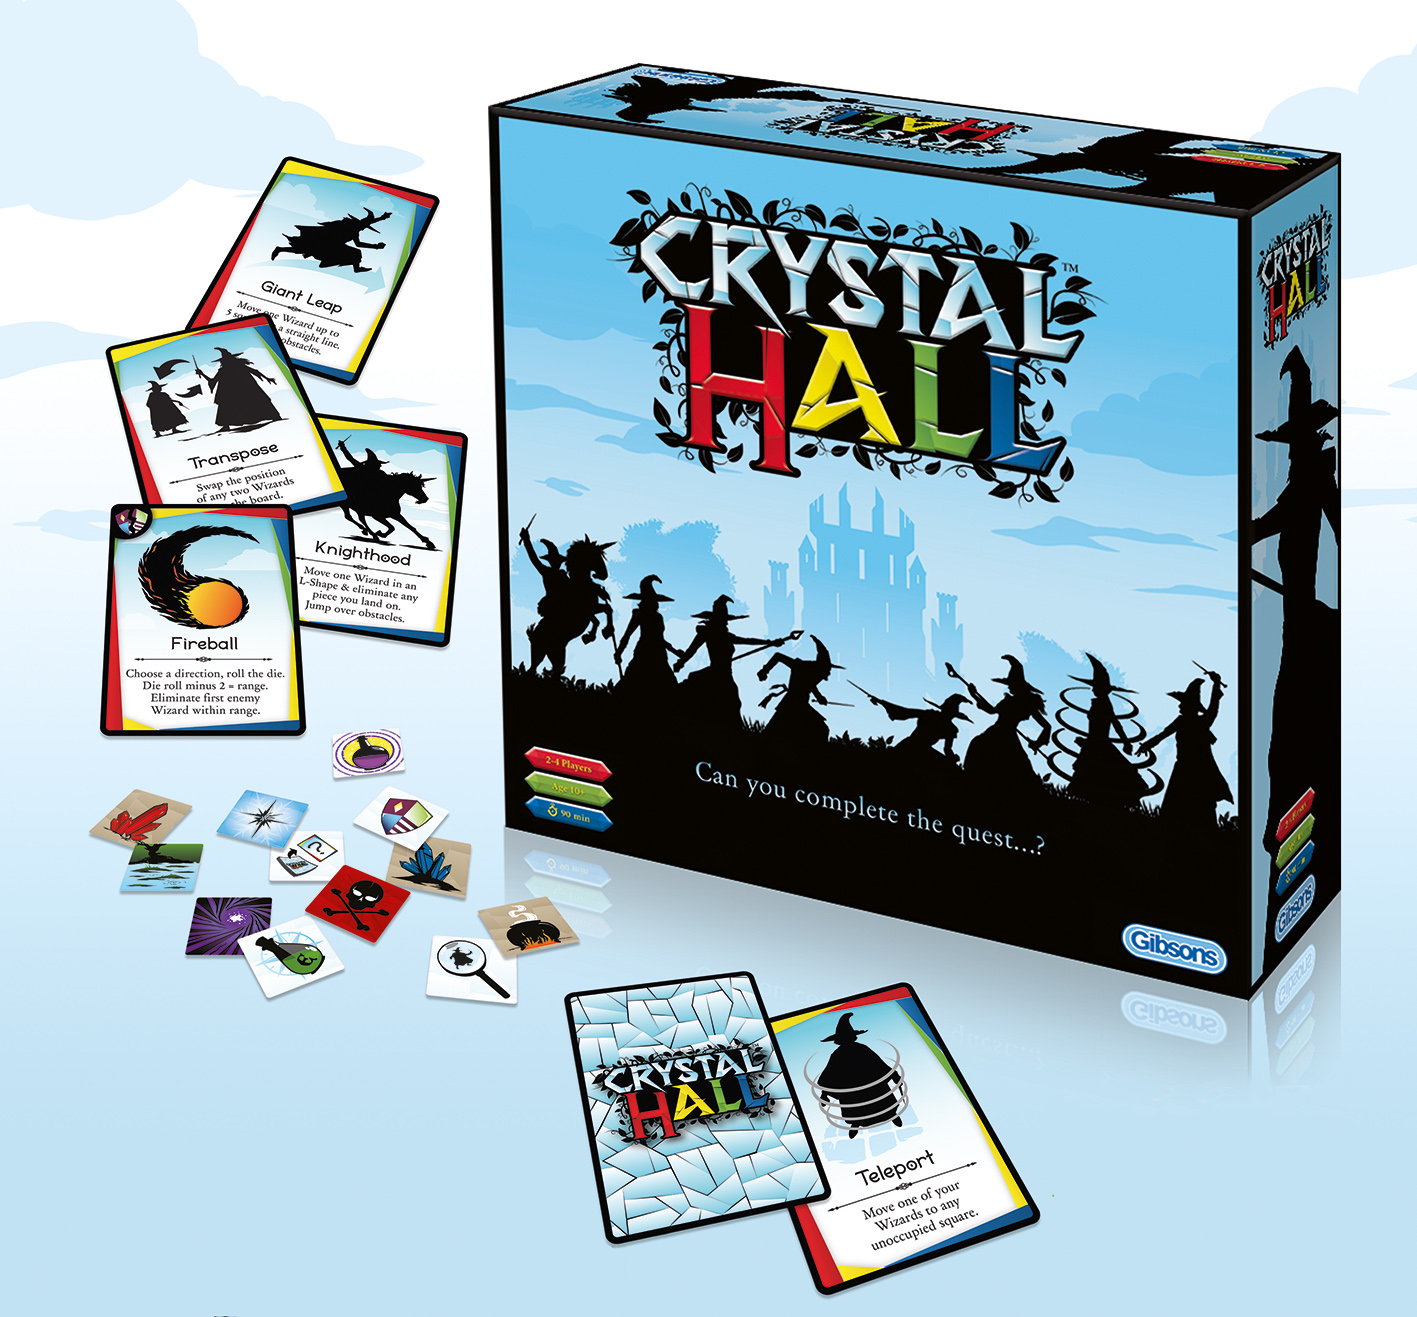 Crystal Hall